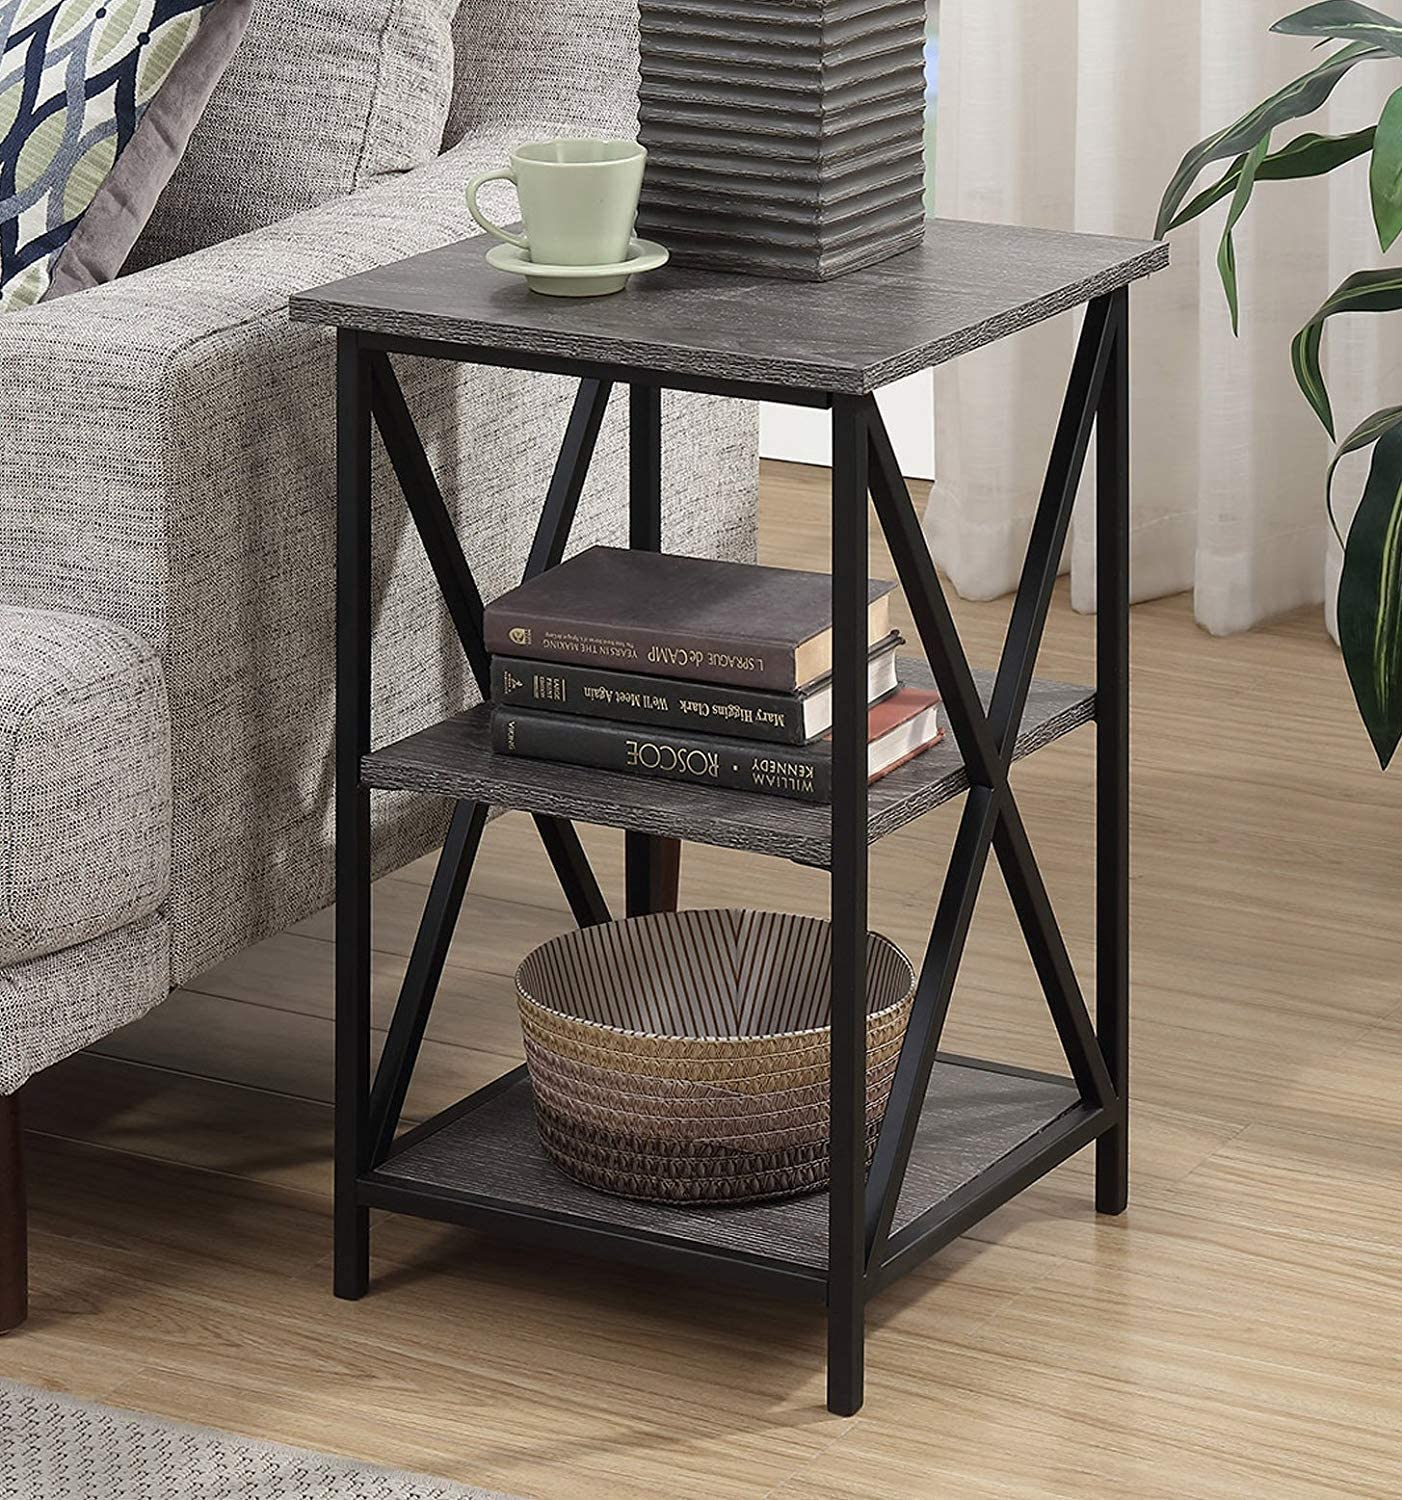 Convenience Concepts Tucson 3 Tier End Table, Weathered Gray